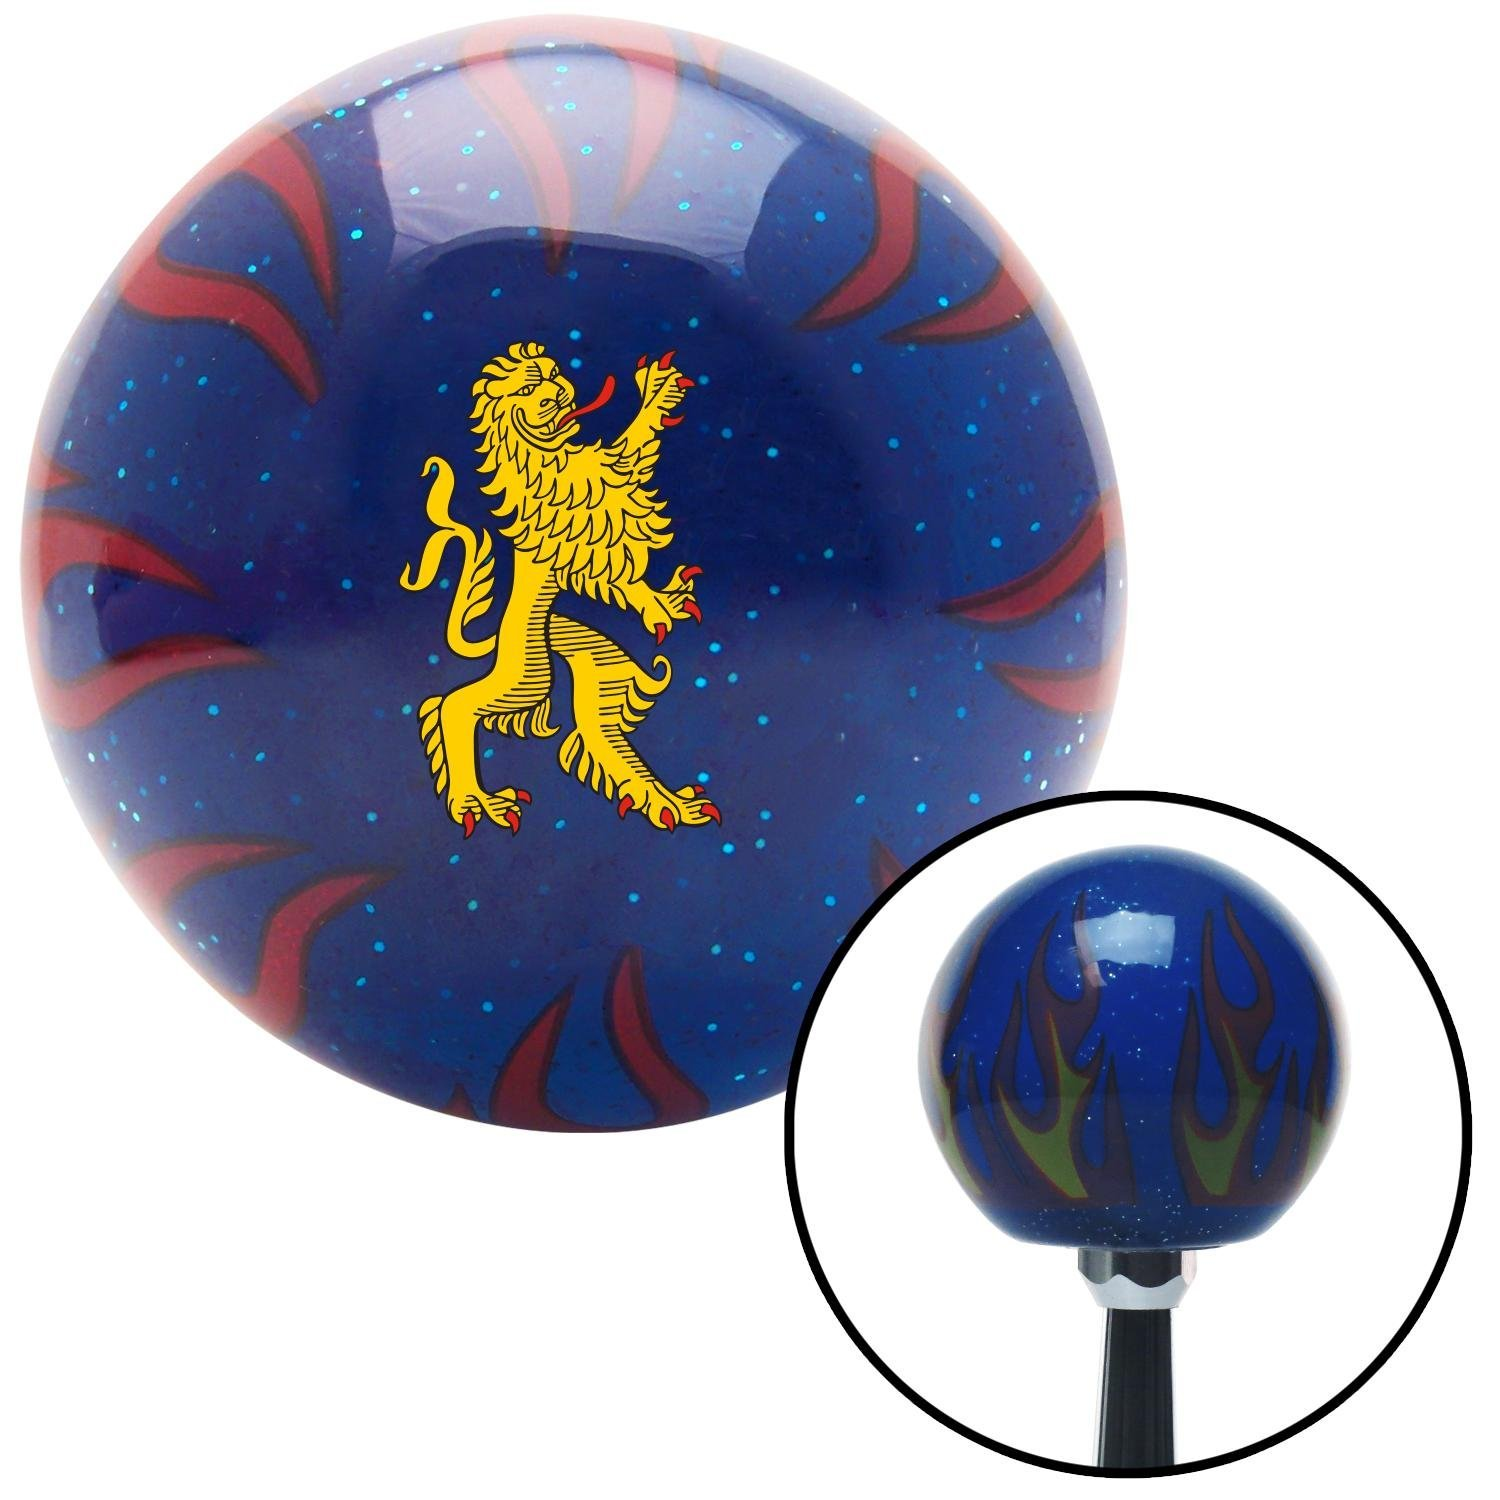 Bavarian Lion American Shifter 251823 Blue Flame Metal Flake Shift Knob with M16 x 1.5 Insert